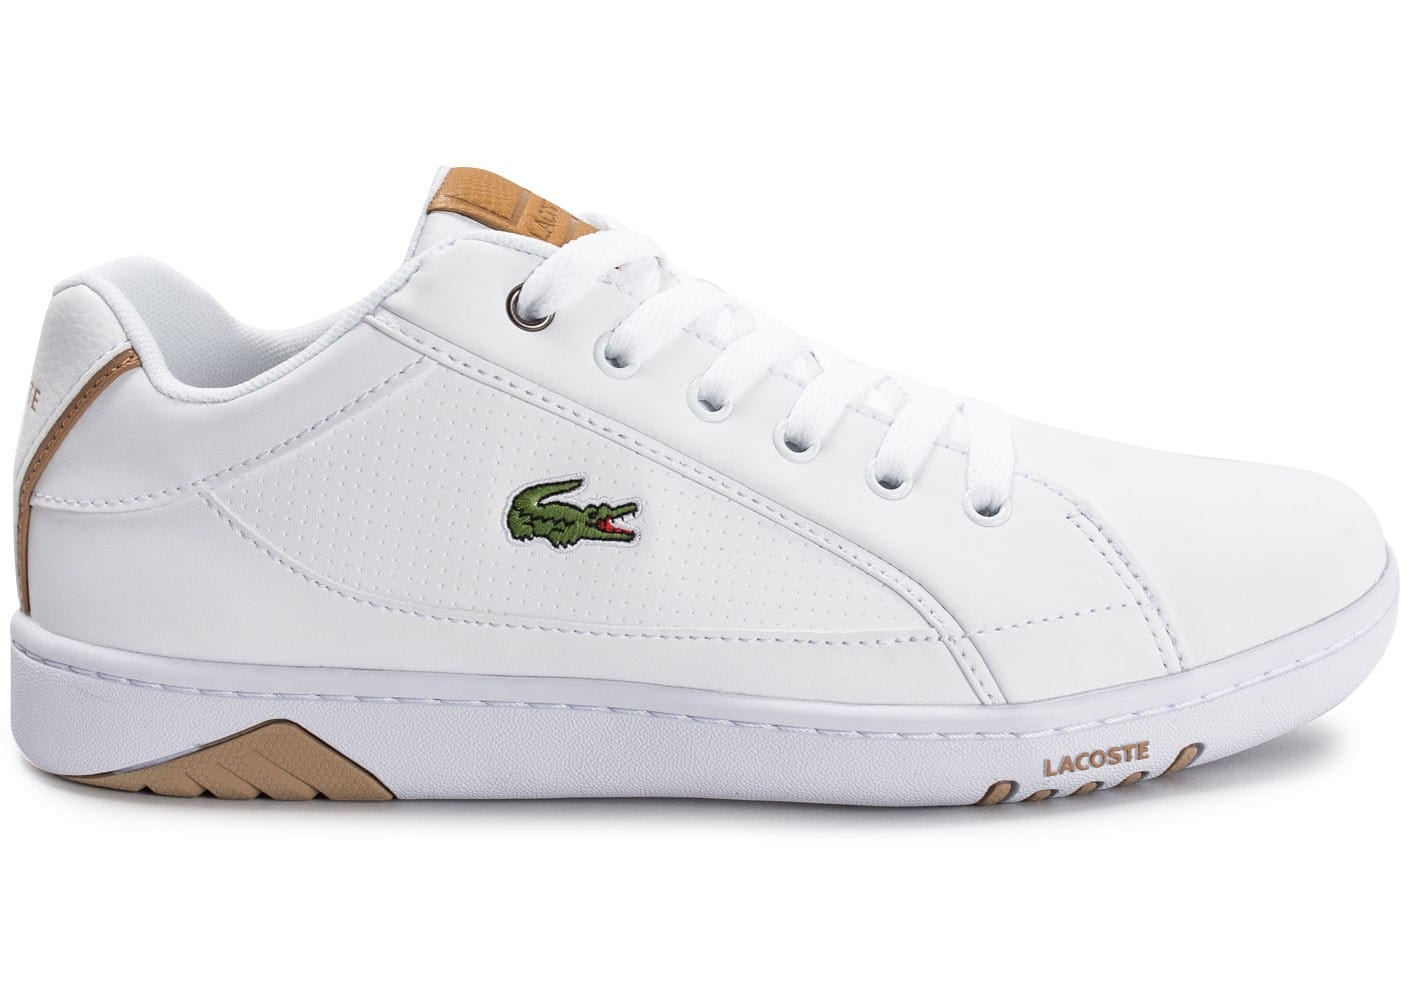 Deviation Lacoste Baskets Chaussures Homme Blanche Vpzqhh Chausport DHE2IW9